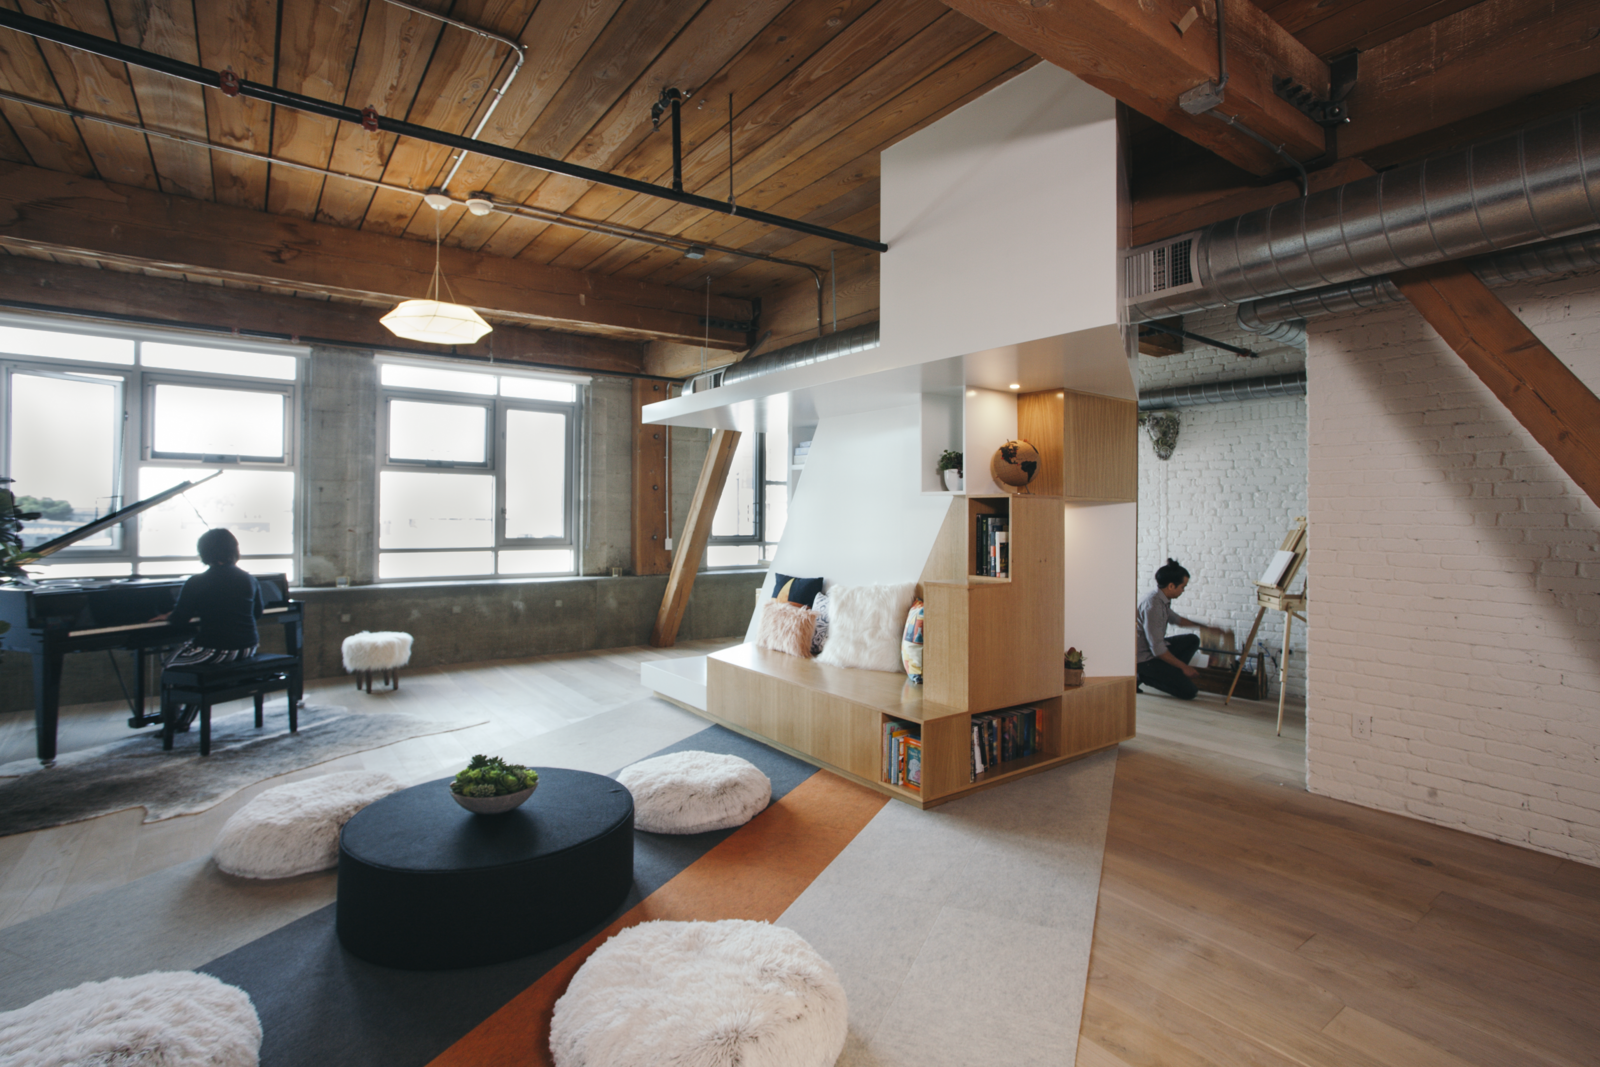 CHA:COL took acoustic concerns into consideration when designing the final environment. In addition to the one facade of windows, a Zaneen pendant illuminates the loft.